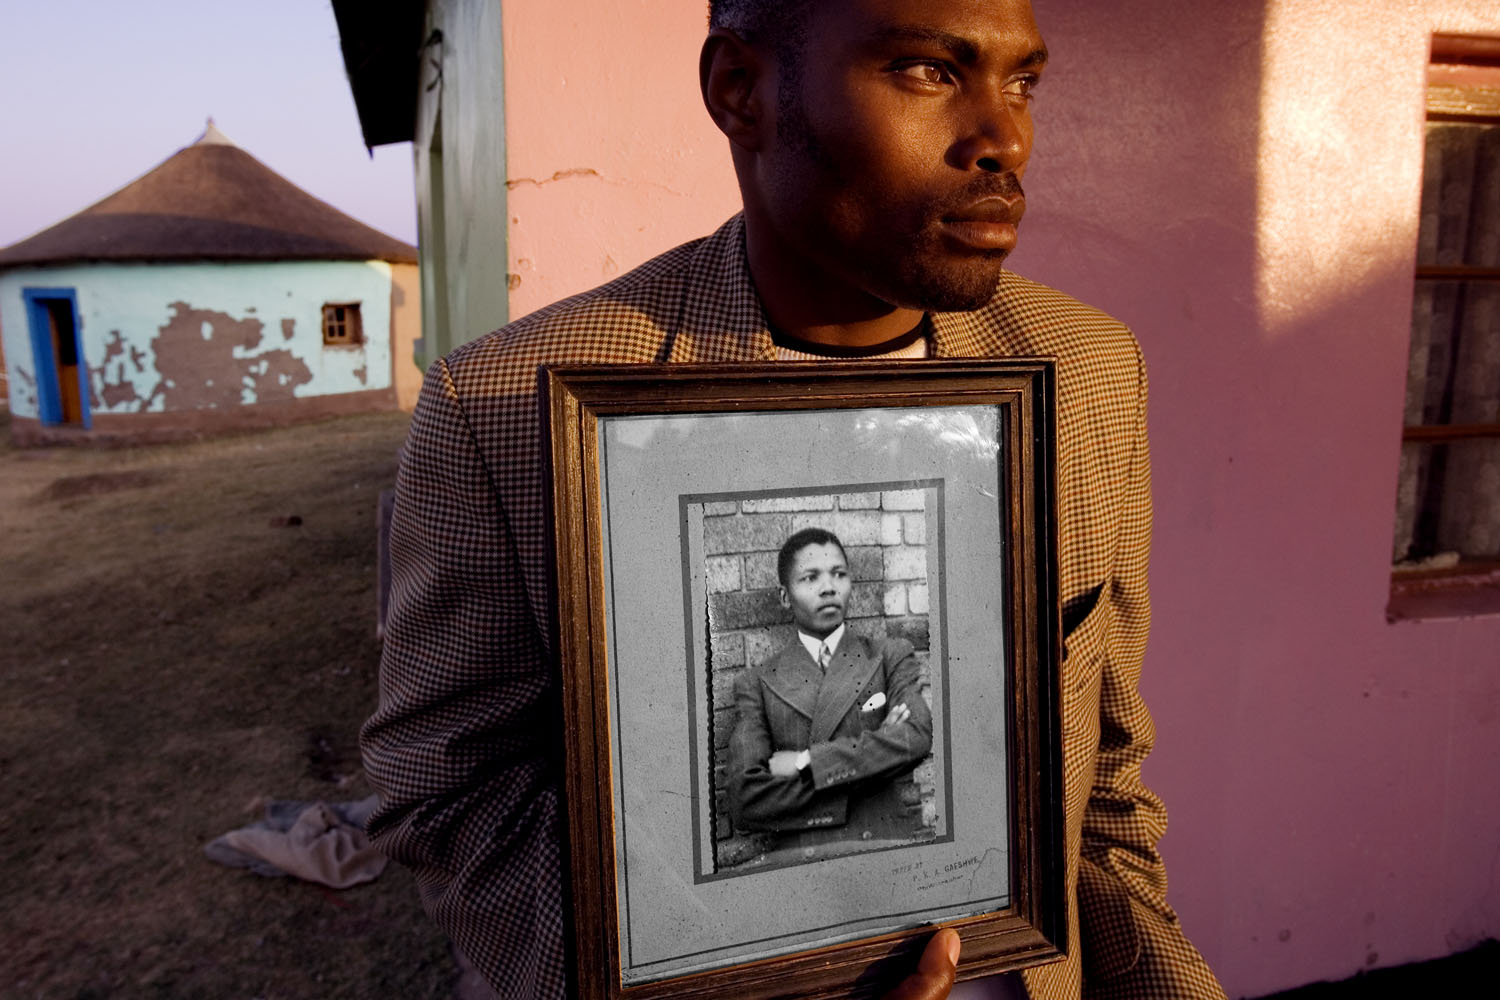 'Madiba' Nelson Rolihlahla Mandela was raised in the rural Transkei, born into the Xhosa Thembu Royal family. At age 22, after studying at the prestigious Fort Hare University when the portrait in this photograph was made, 'Madiba' returned to the village to find that his Chieftan father had arranged marriages for him and his adopted brother, Justin. It was at this moment that Mandela, resisting, took a train to Johannesburg and was quickly catapulted into a leadership role to end apartheid. The young man in this photograph, holding the portrait of 'Madiba' in college, is a distant relative who lives in the village of Mqhekezweni, in the Transkei, where this original portrait still sits on the mantel of the family home.